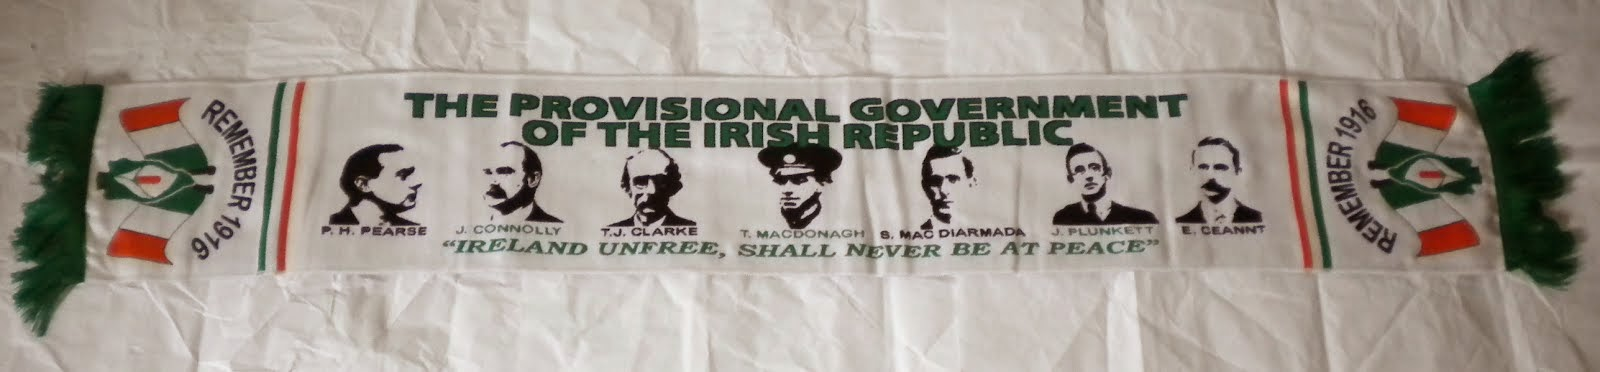 Bufanda Provisional Government - Irish Republic - 15€